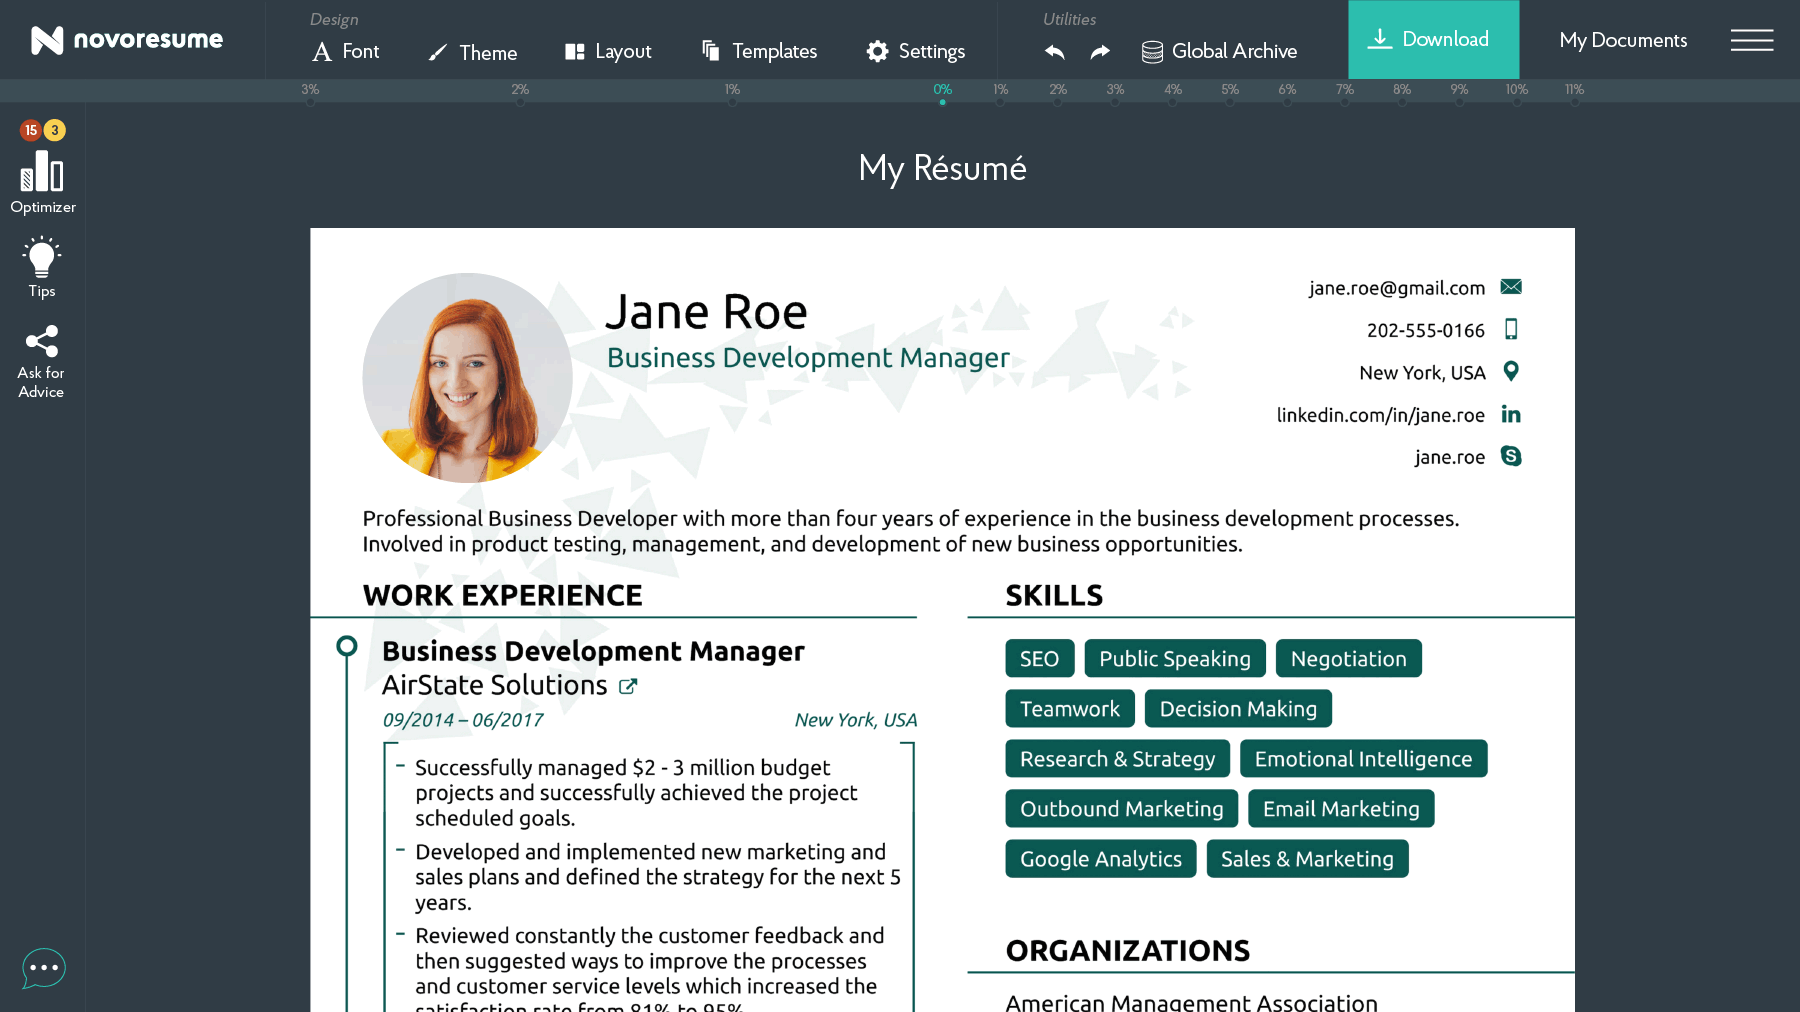 A Professional Resume Builder Showing For Business Development Manager